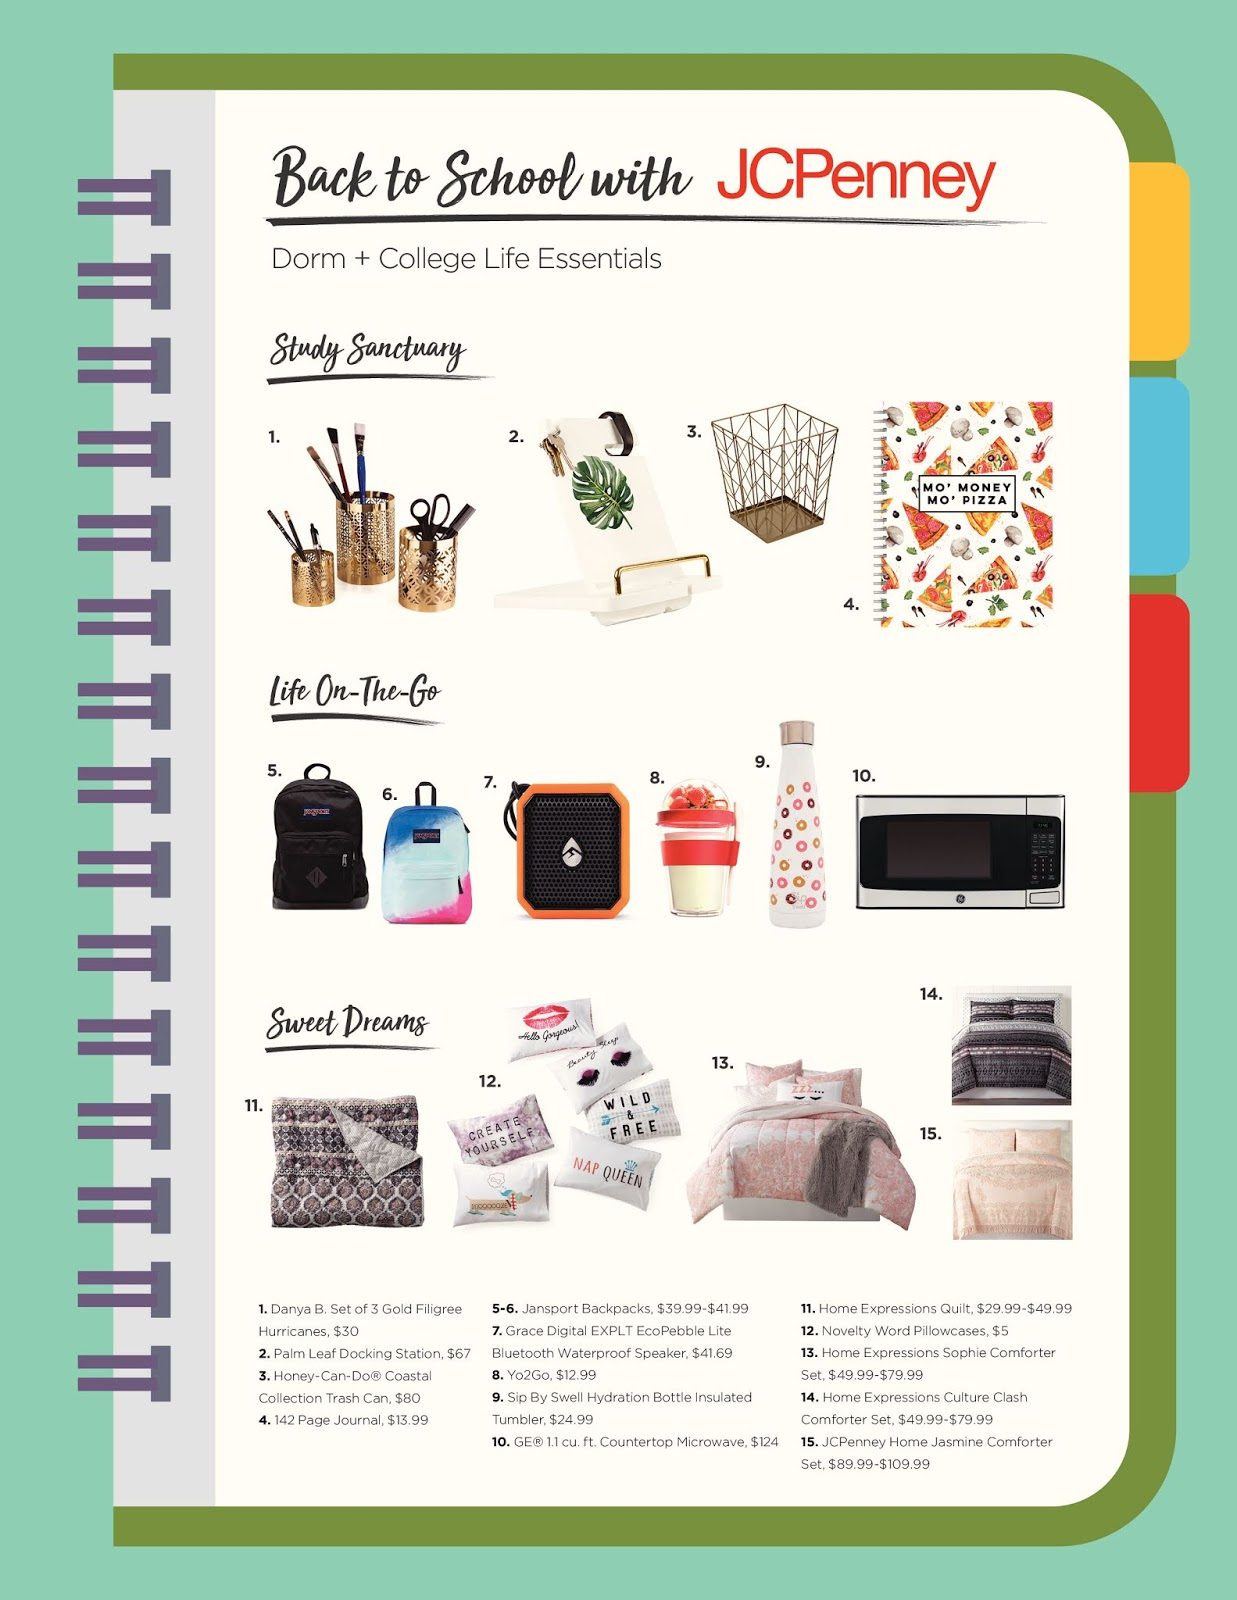 Back to School Dorm and College Life Essentials with JCPenney  via  www.productreviewmom.com